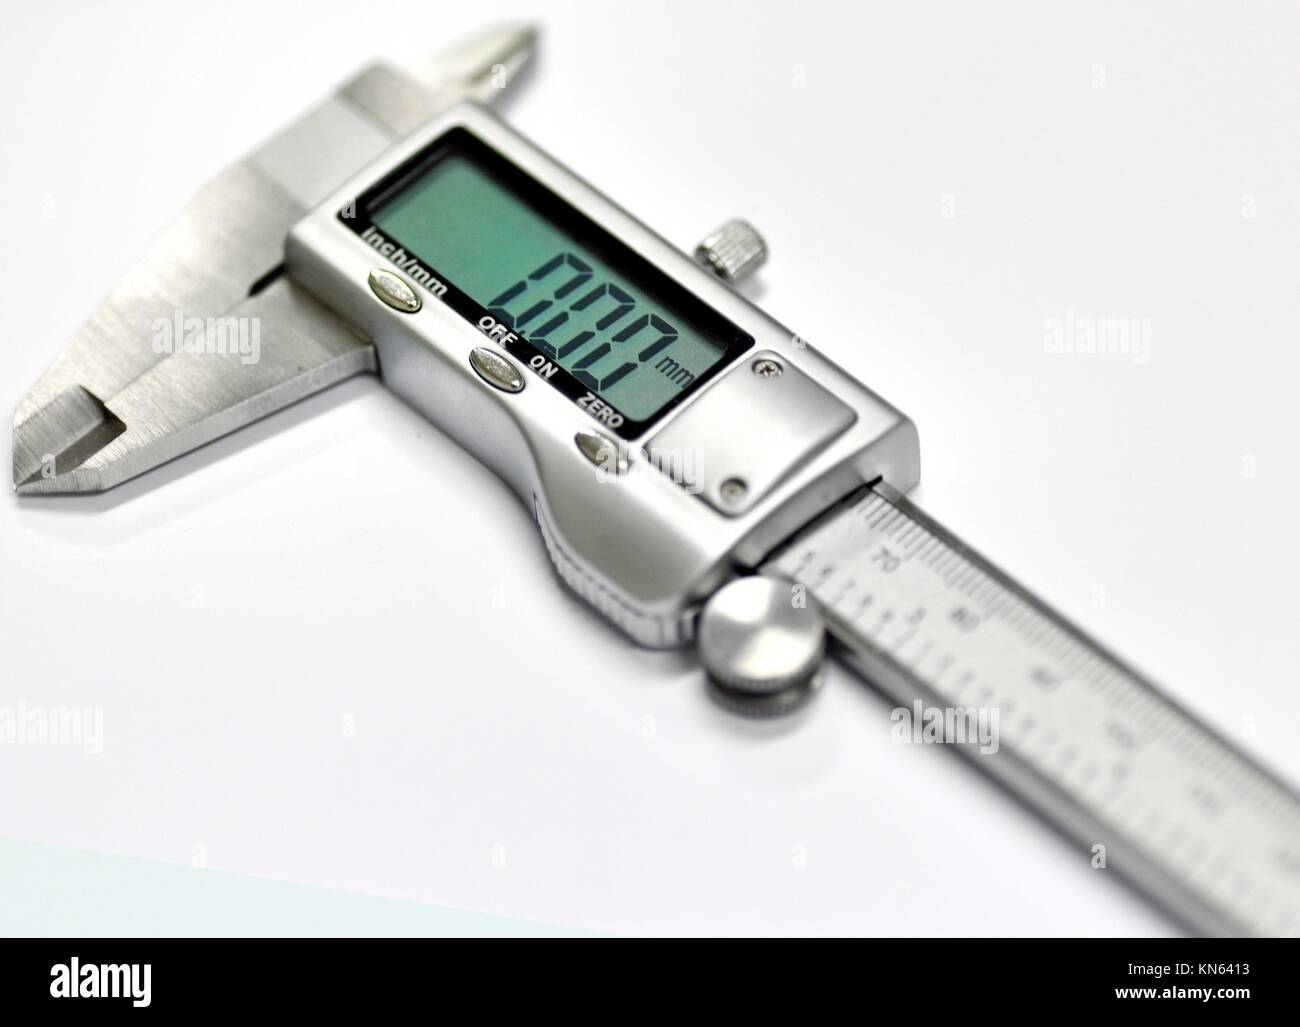 The electronic exact calliper. - Stock Image